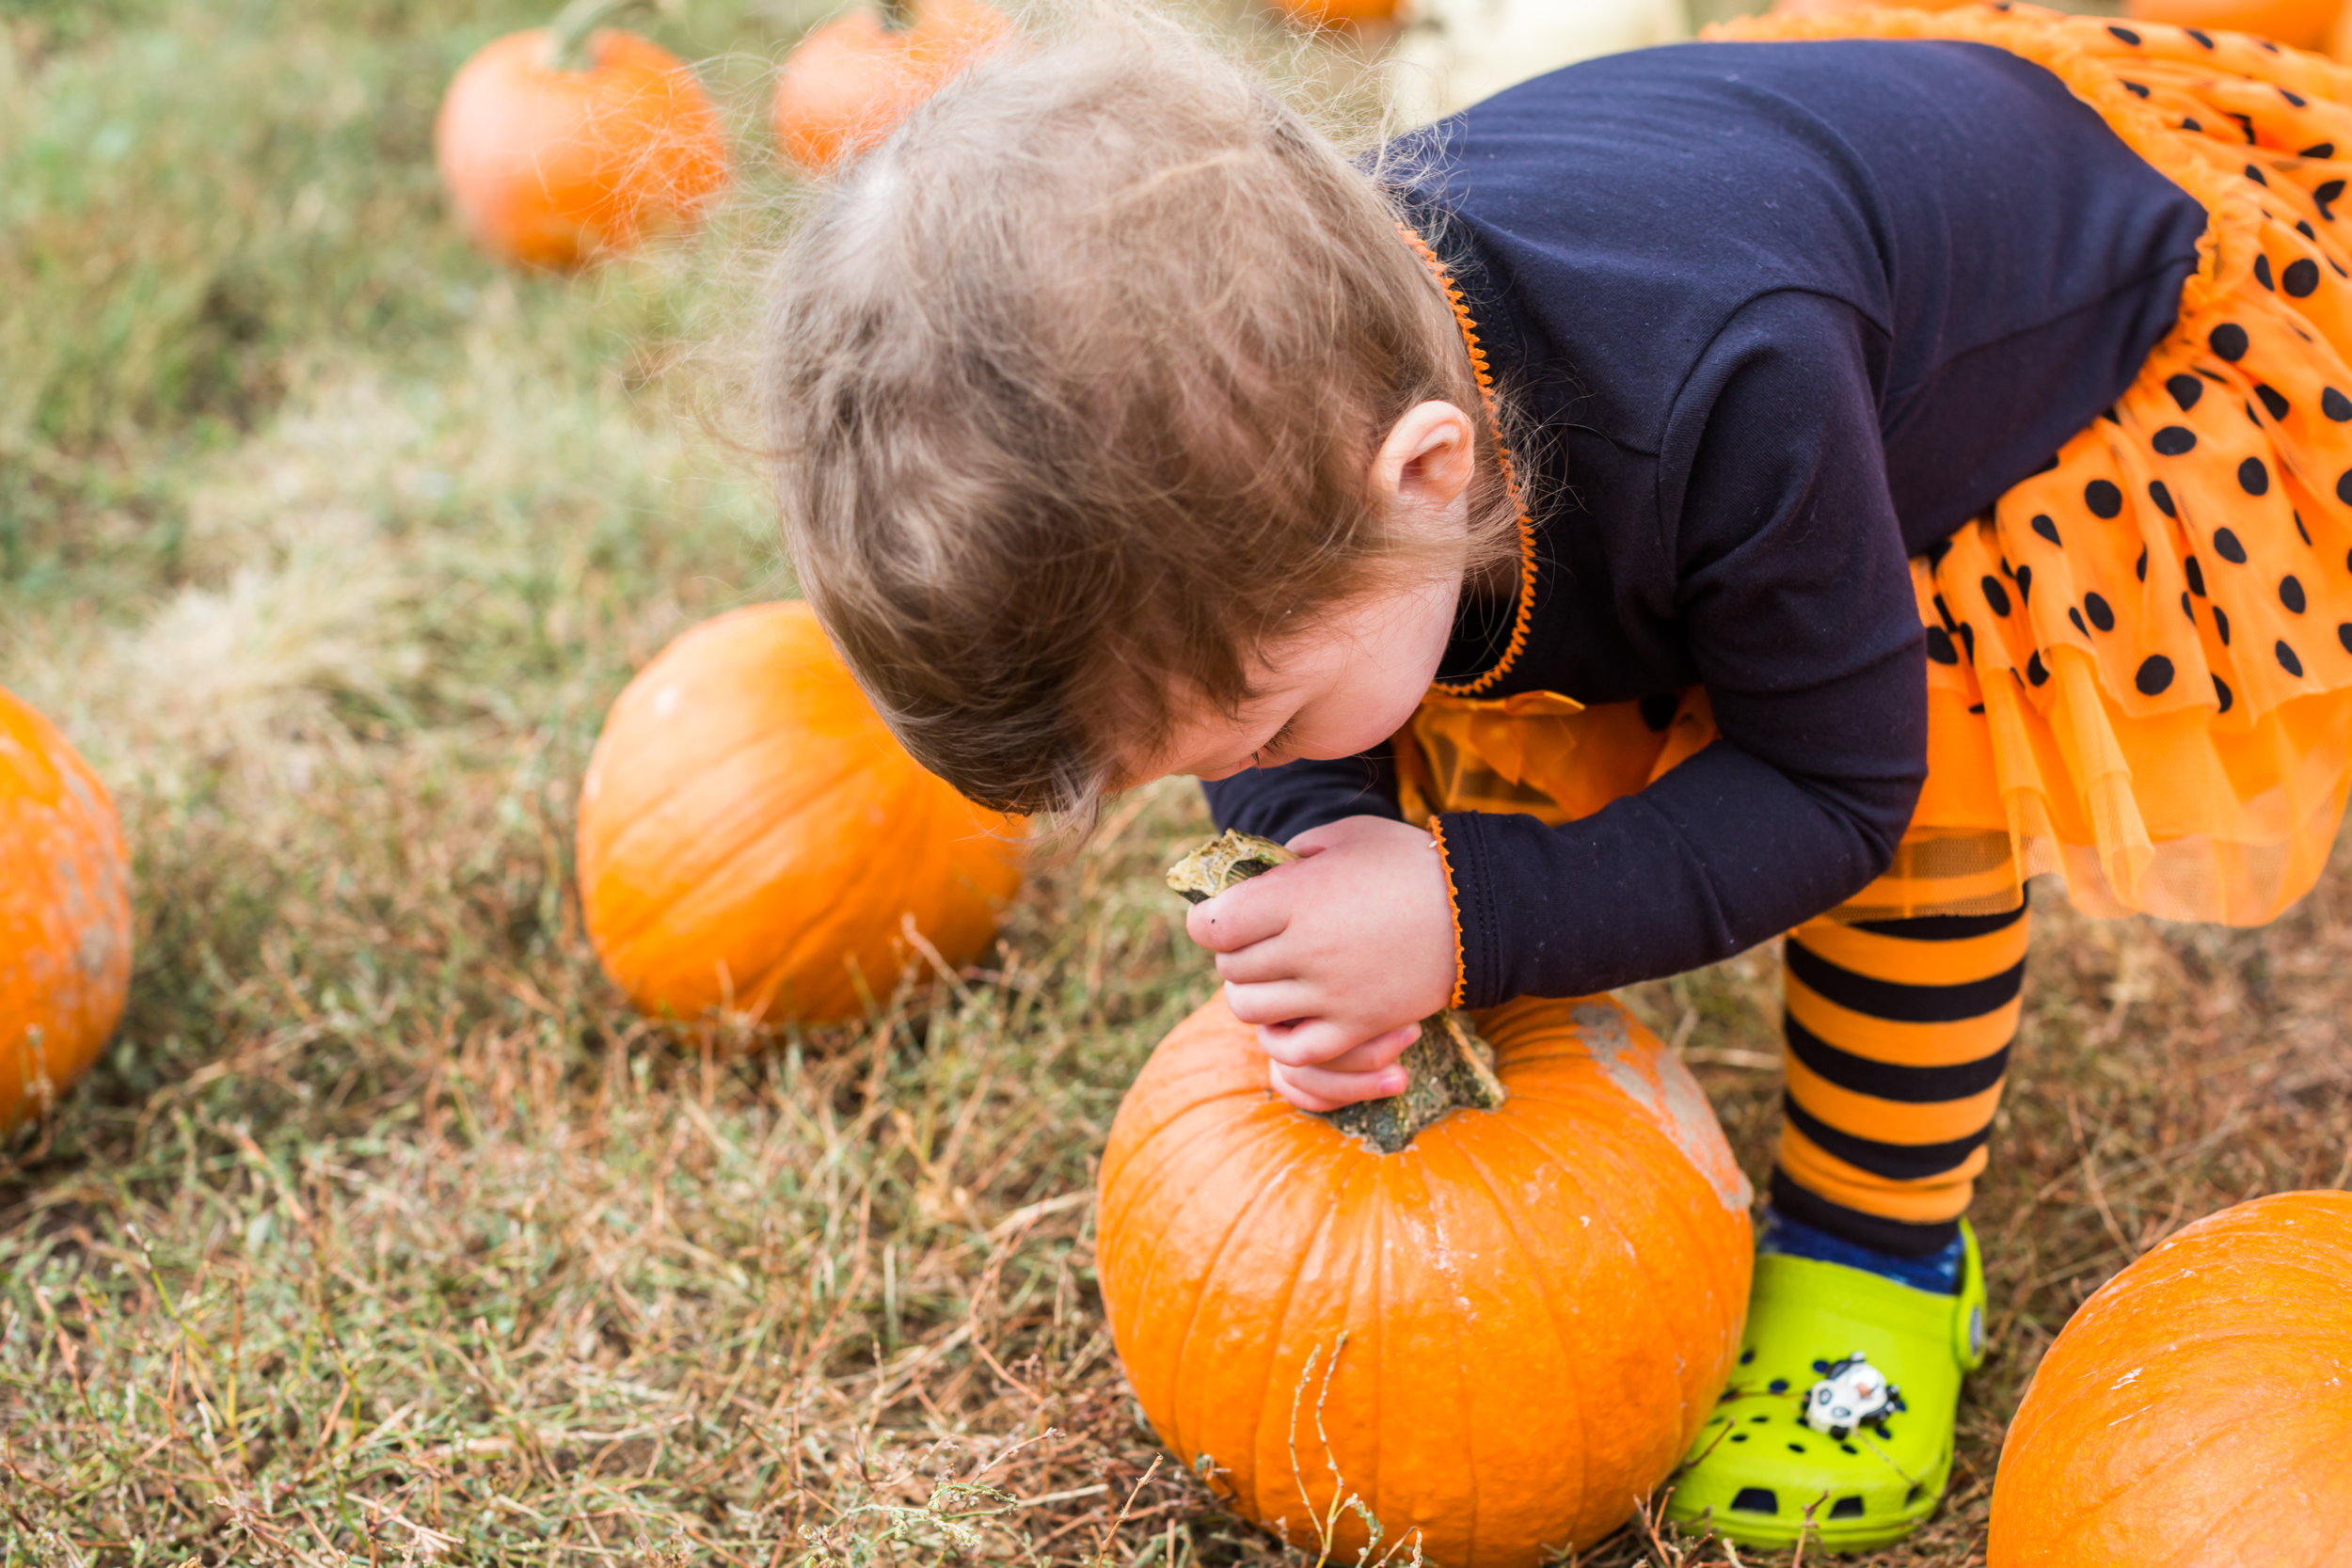 Association Management Group Offers Community Safety Tips For Halloween